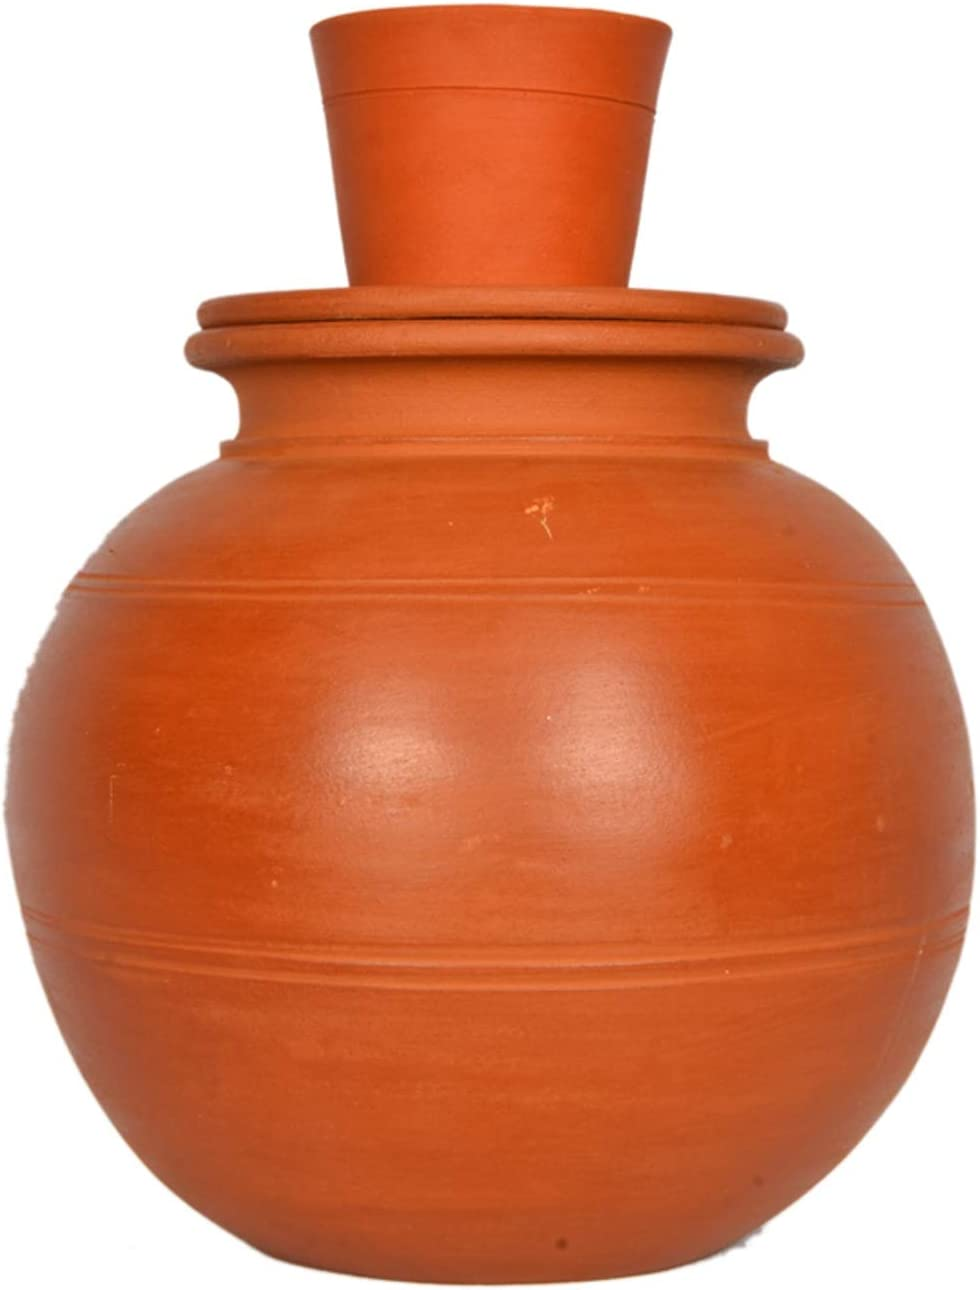 clay pot for water buy online Village Decor Handmade Earthen Clay Water Pot with lid - Carafes Pitcher -  (2 Gallon)